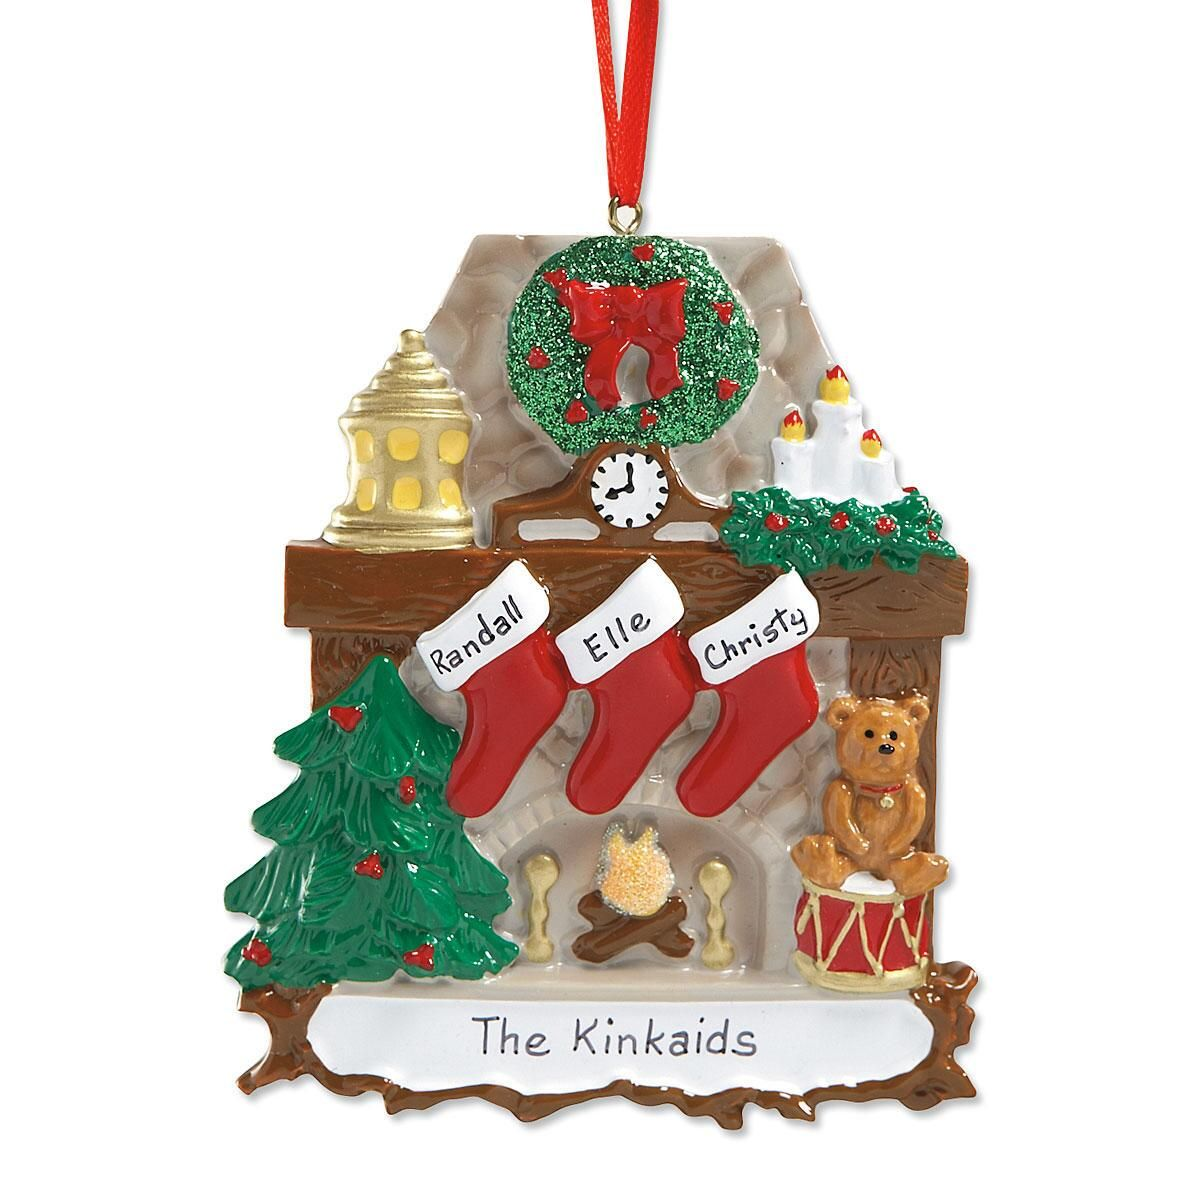 Mantel Stockings & Chimney Ornament Ornaments